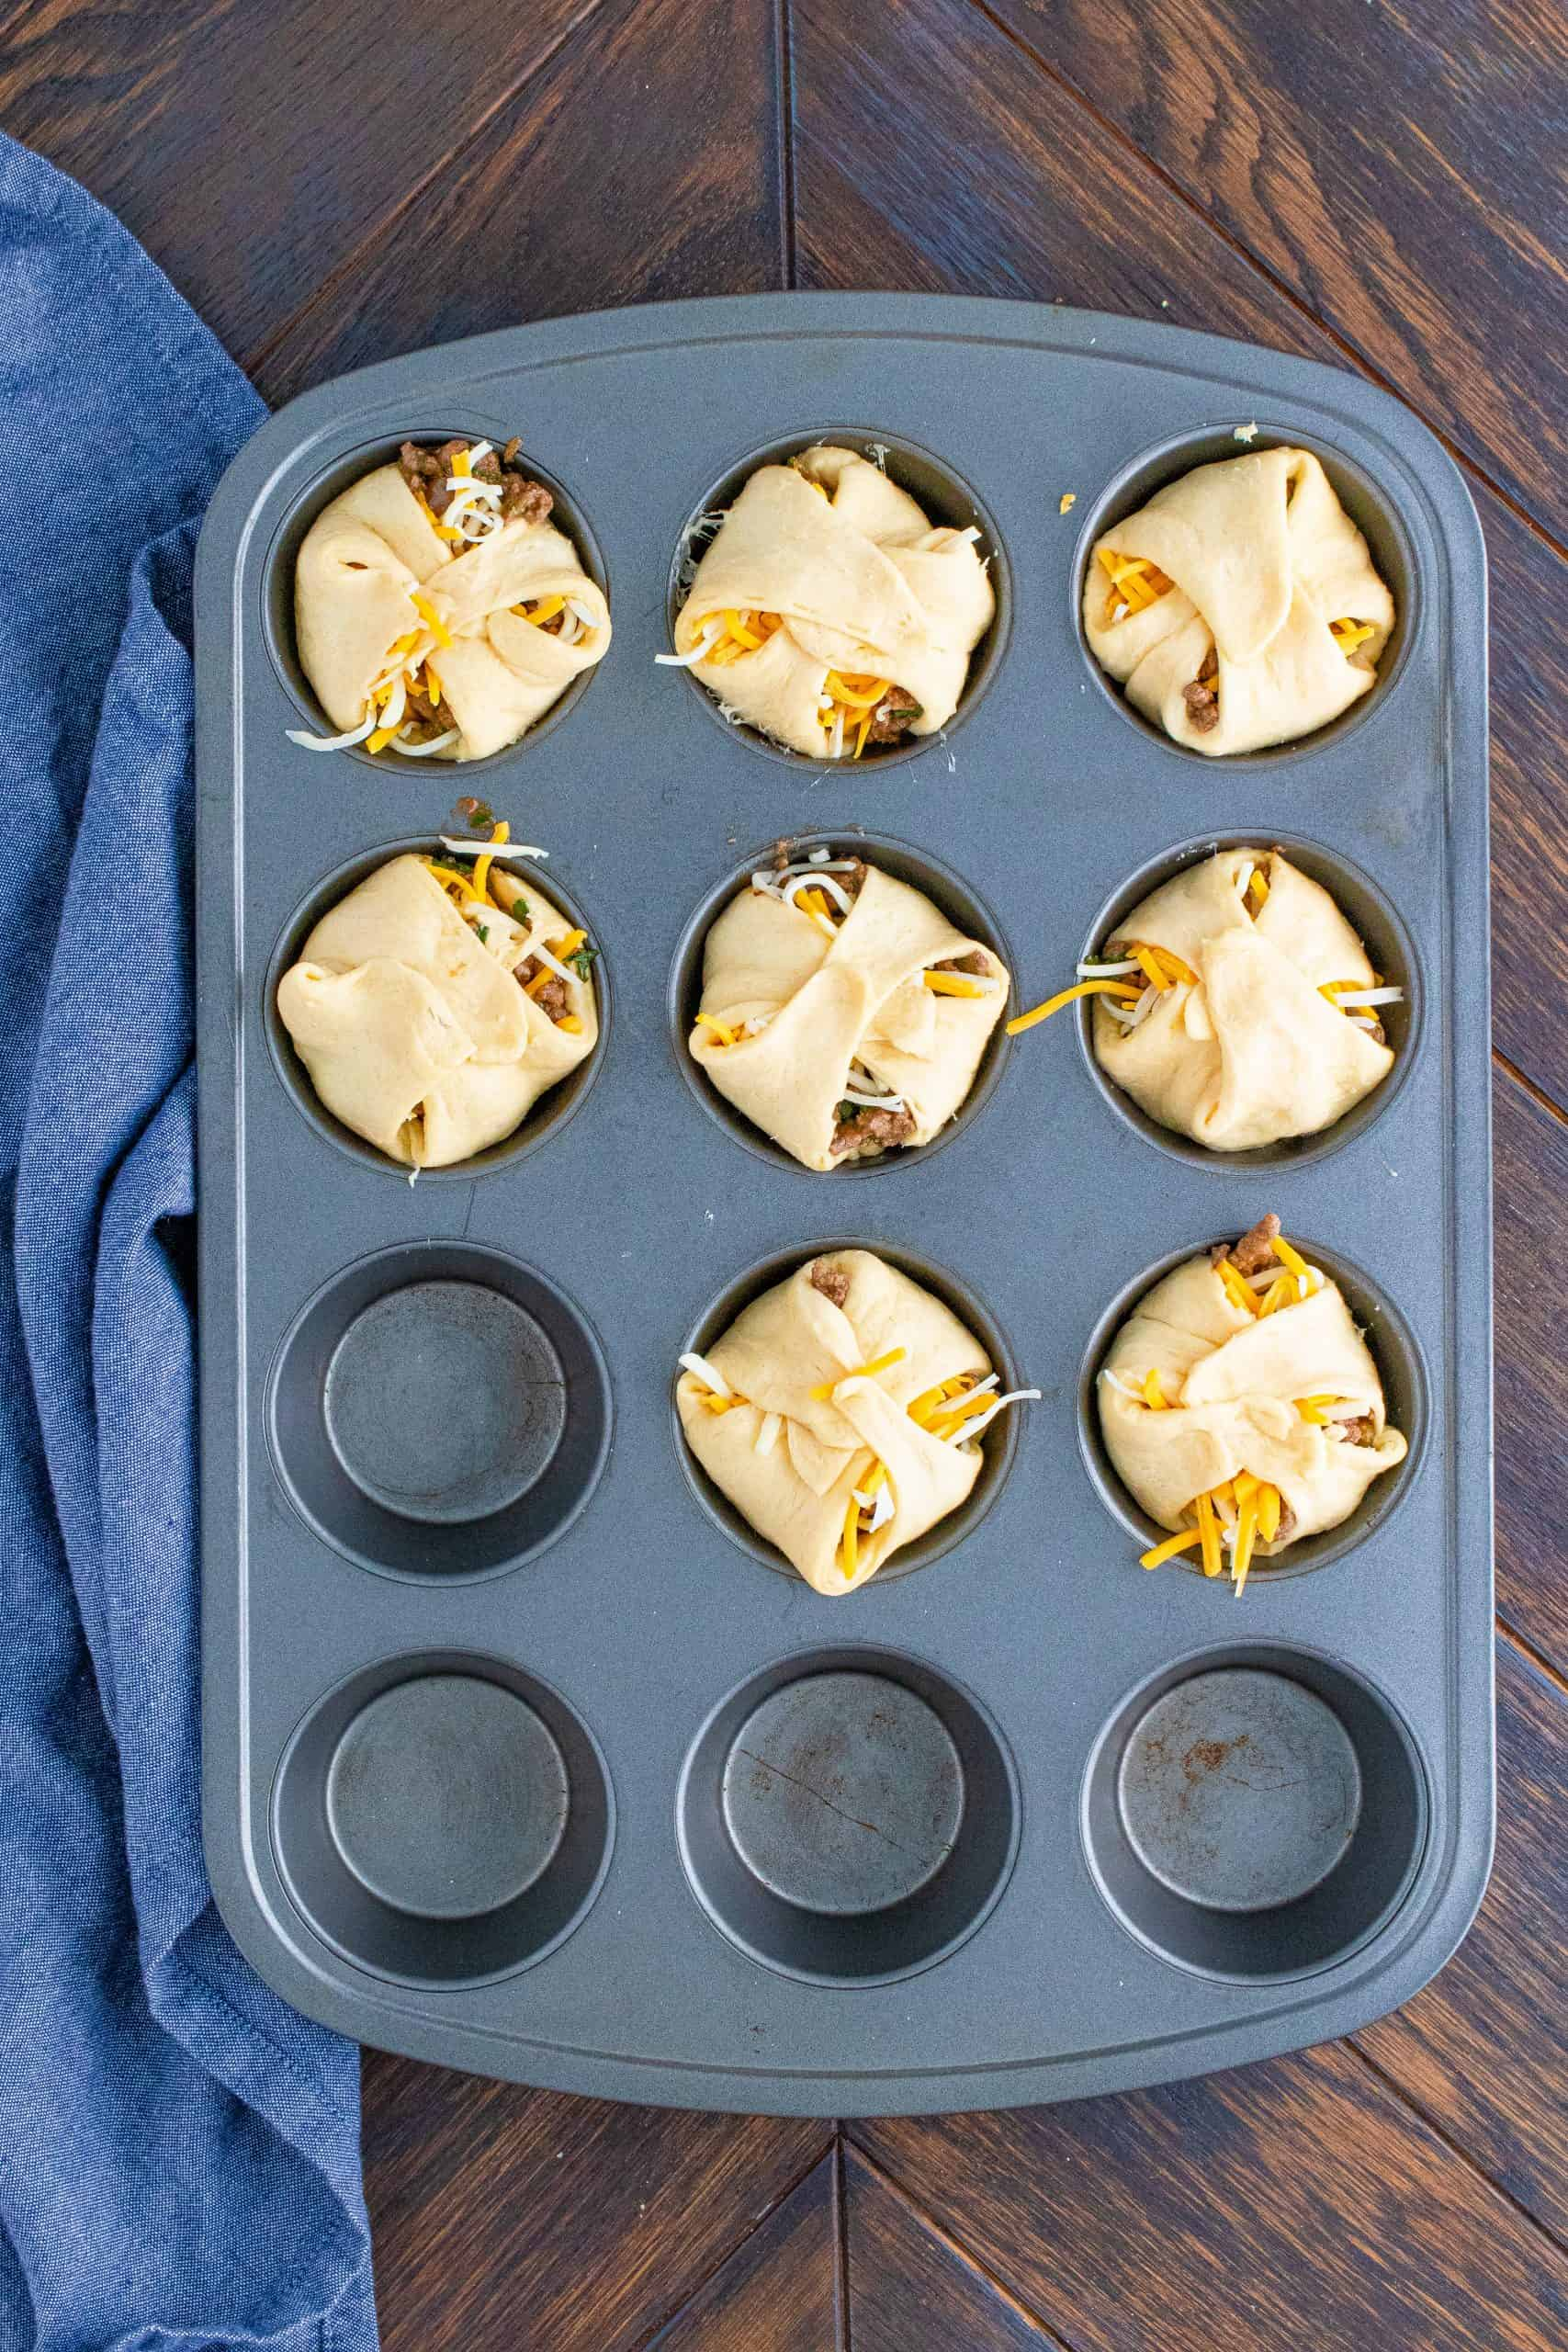 Crescent dough wrapping all fillings up in muffin tin.